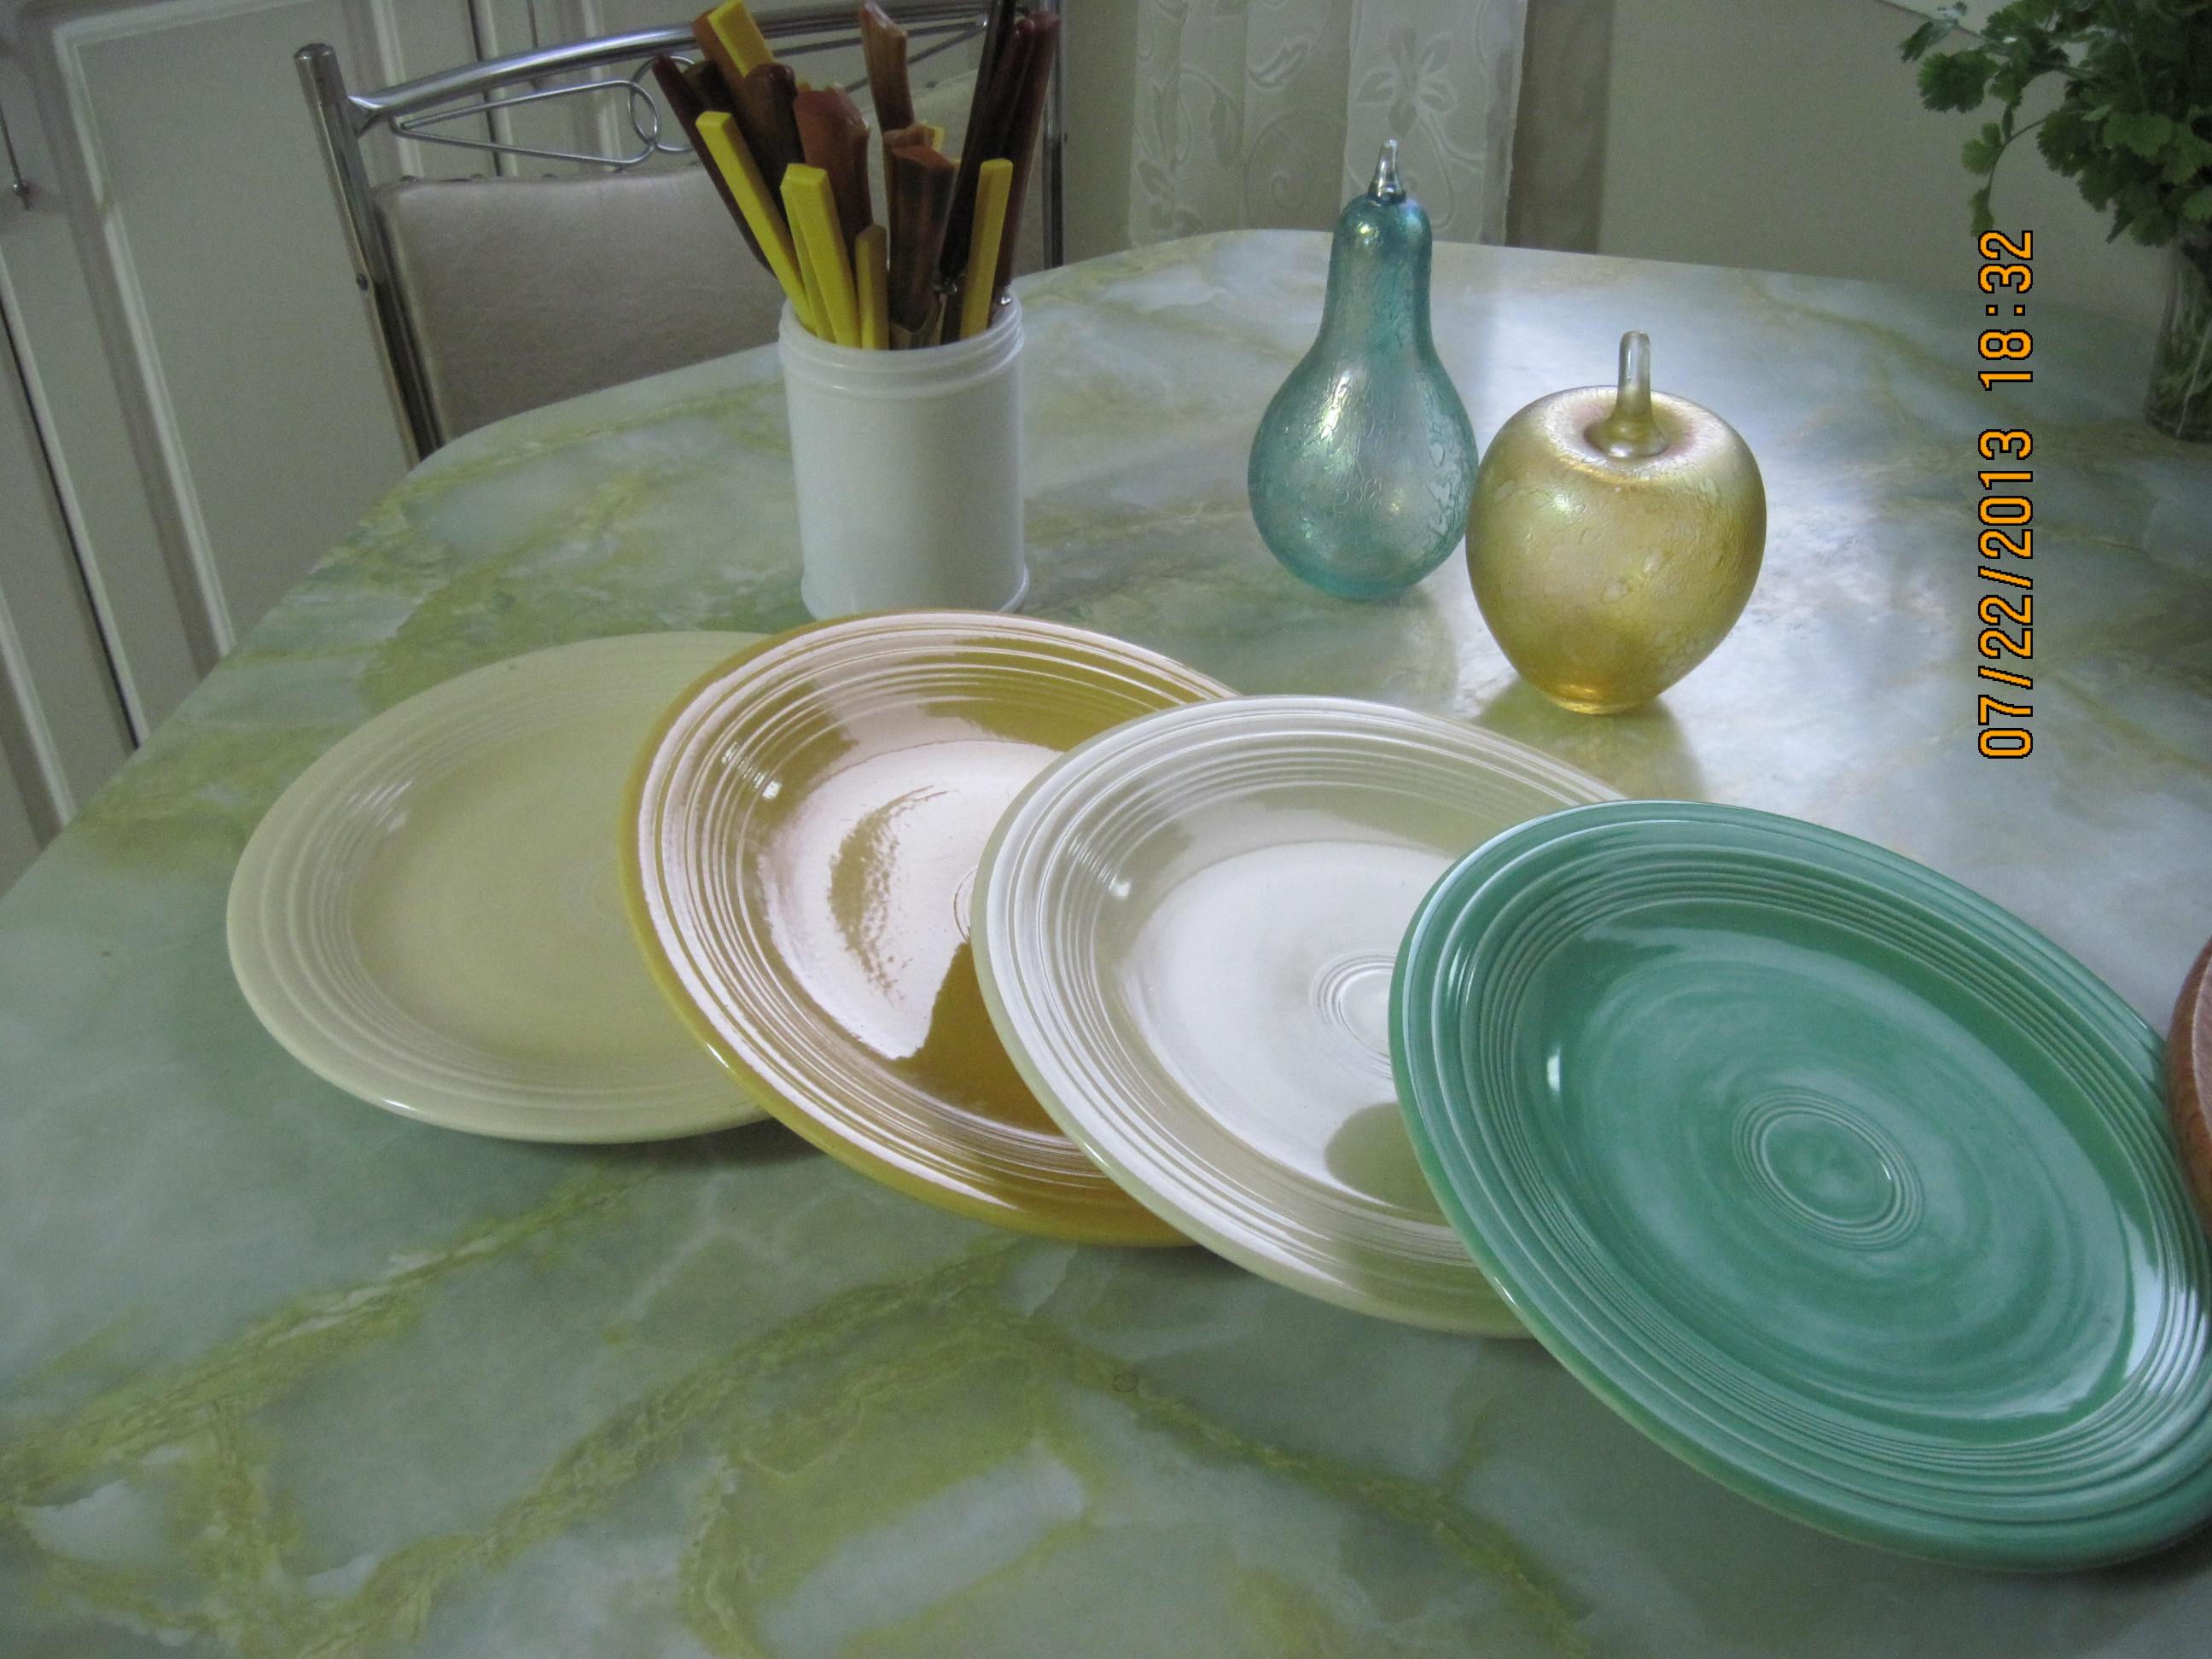 IMG_5863 & Fiesta Ware Plates ca 1930u0027s to 60u0027s by Homer Laughlin Co ...